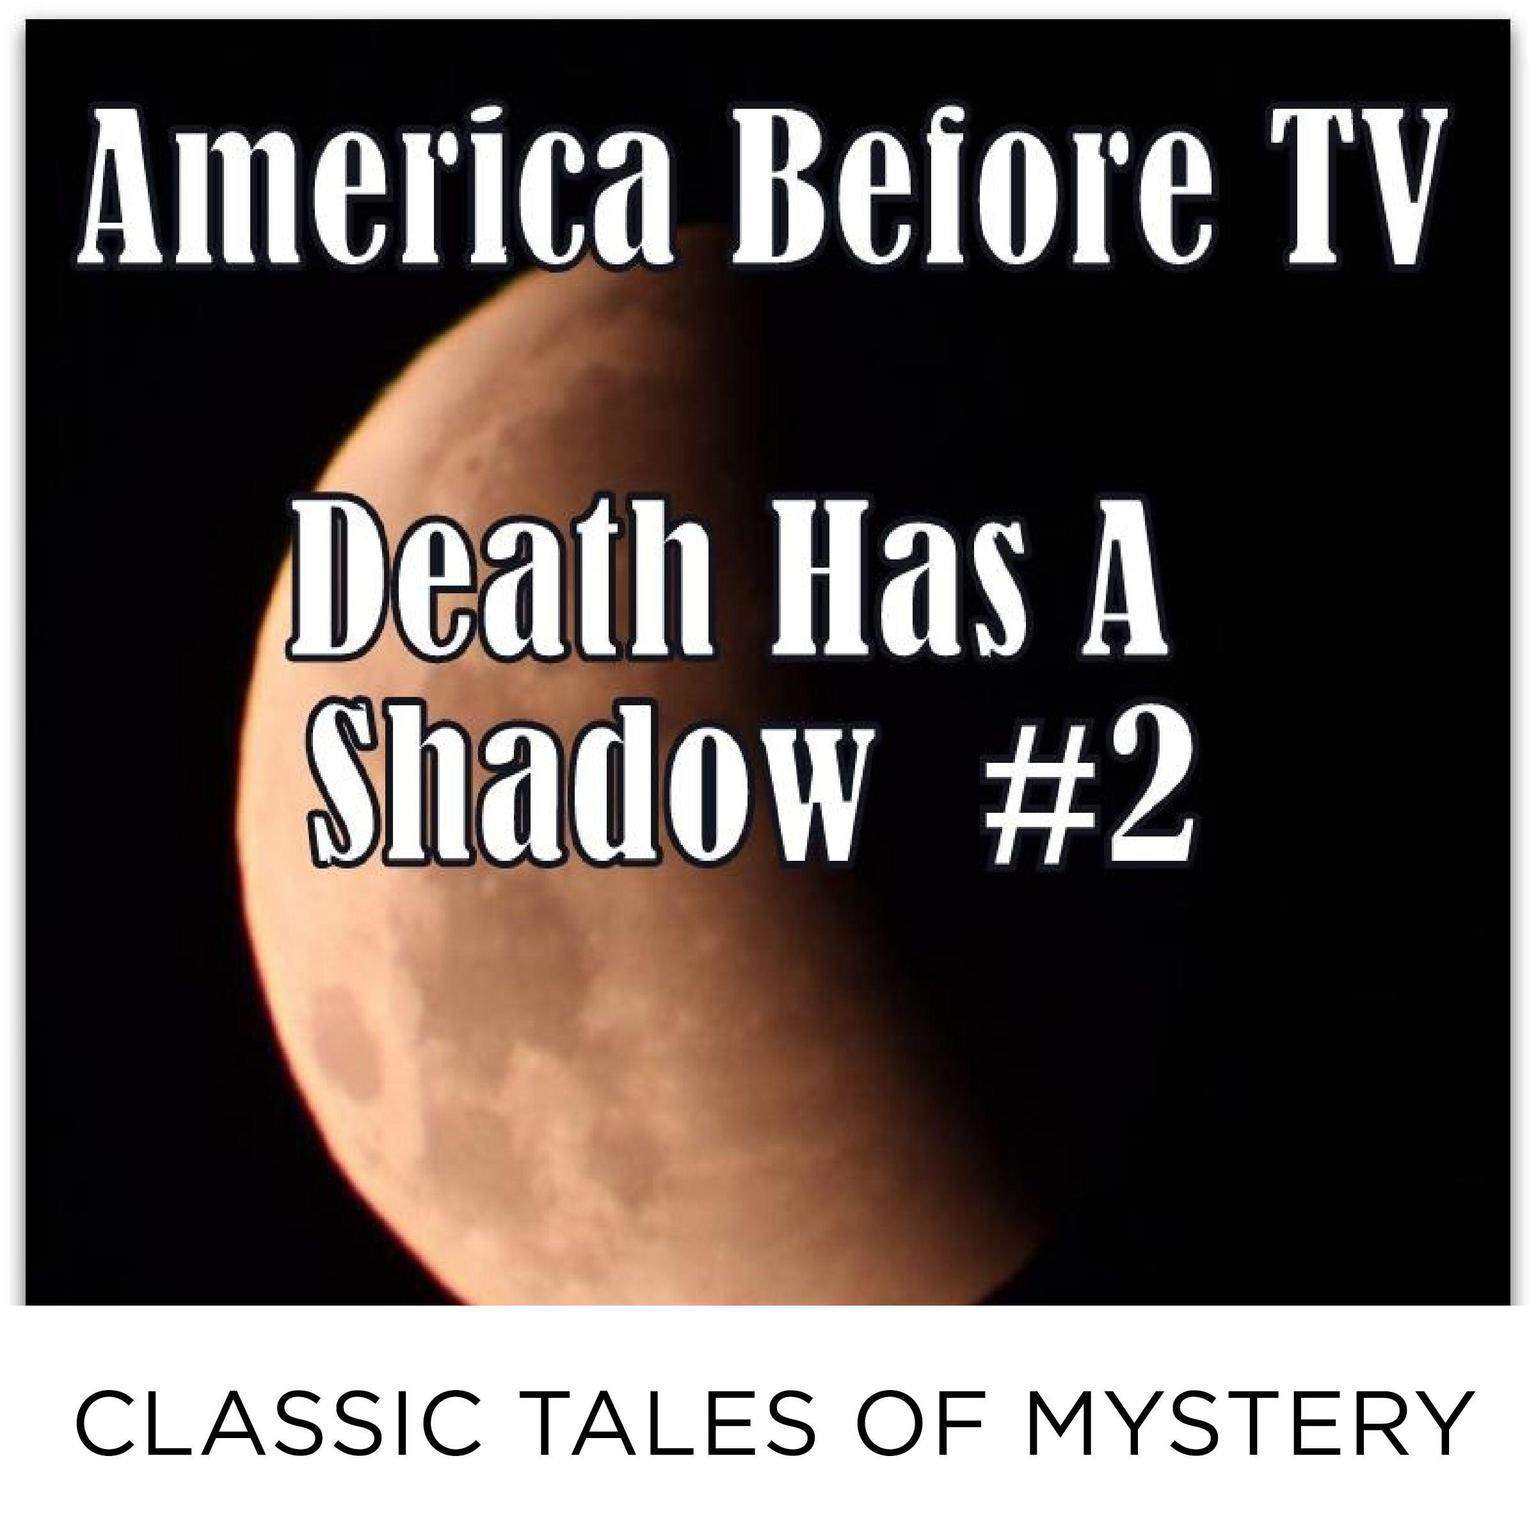 Printable America Before TV - Death Has A Shadow  #2 Audiobook Cover Art